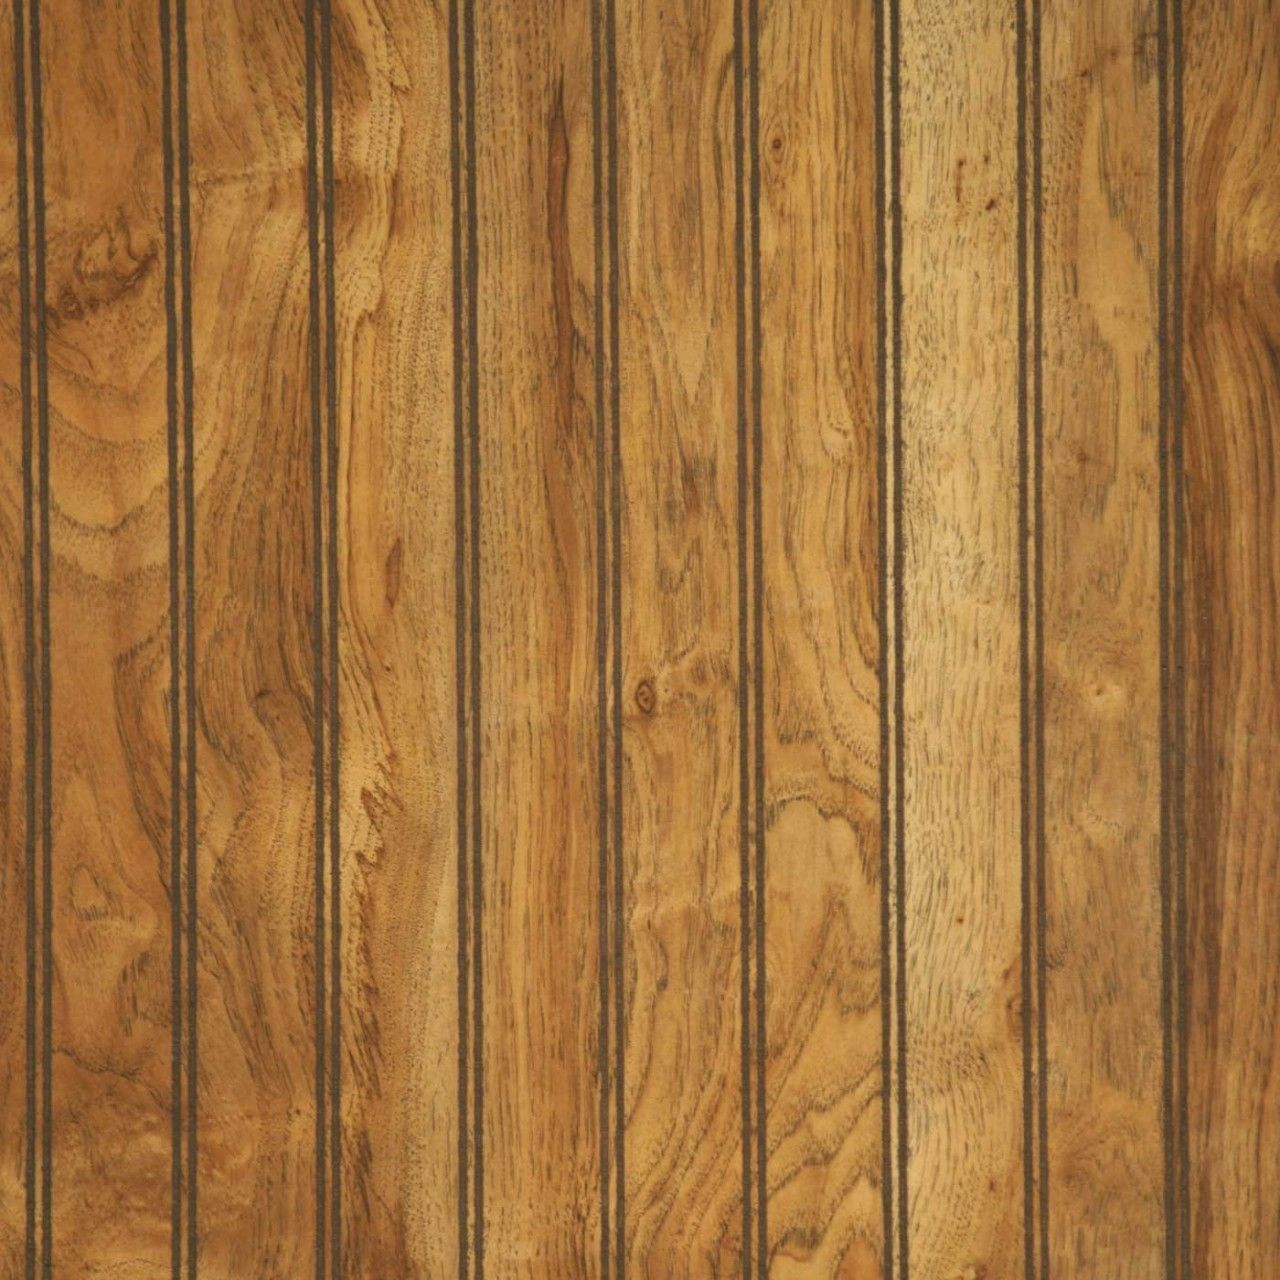 3 16 Natchez Pecan Plywood Beadboard Paneling 4 X 8 Wainscoting Panels Wainscoting Wainscoting Bedroom